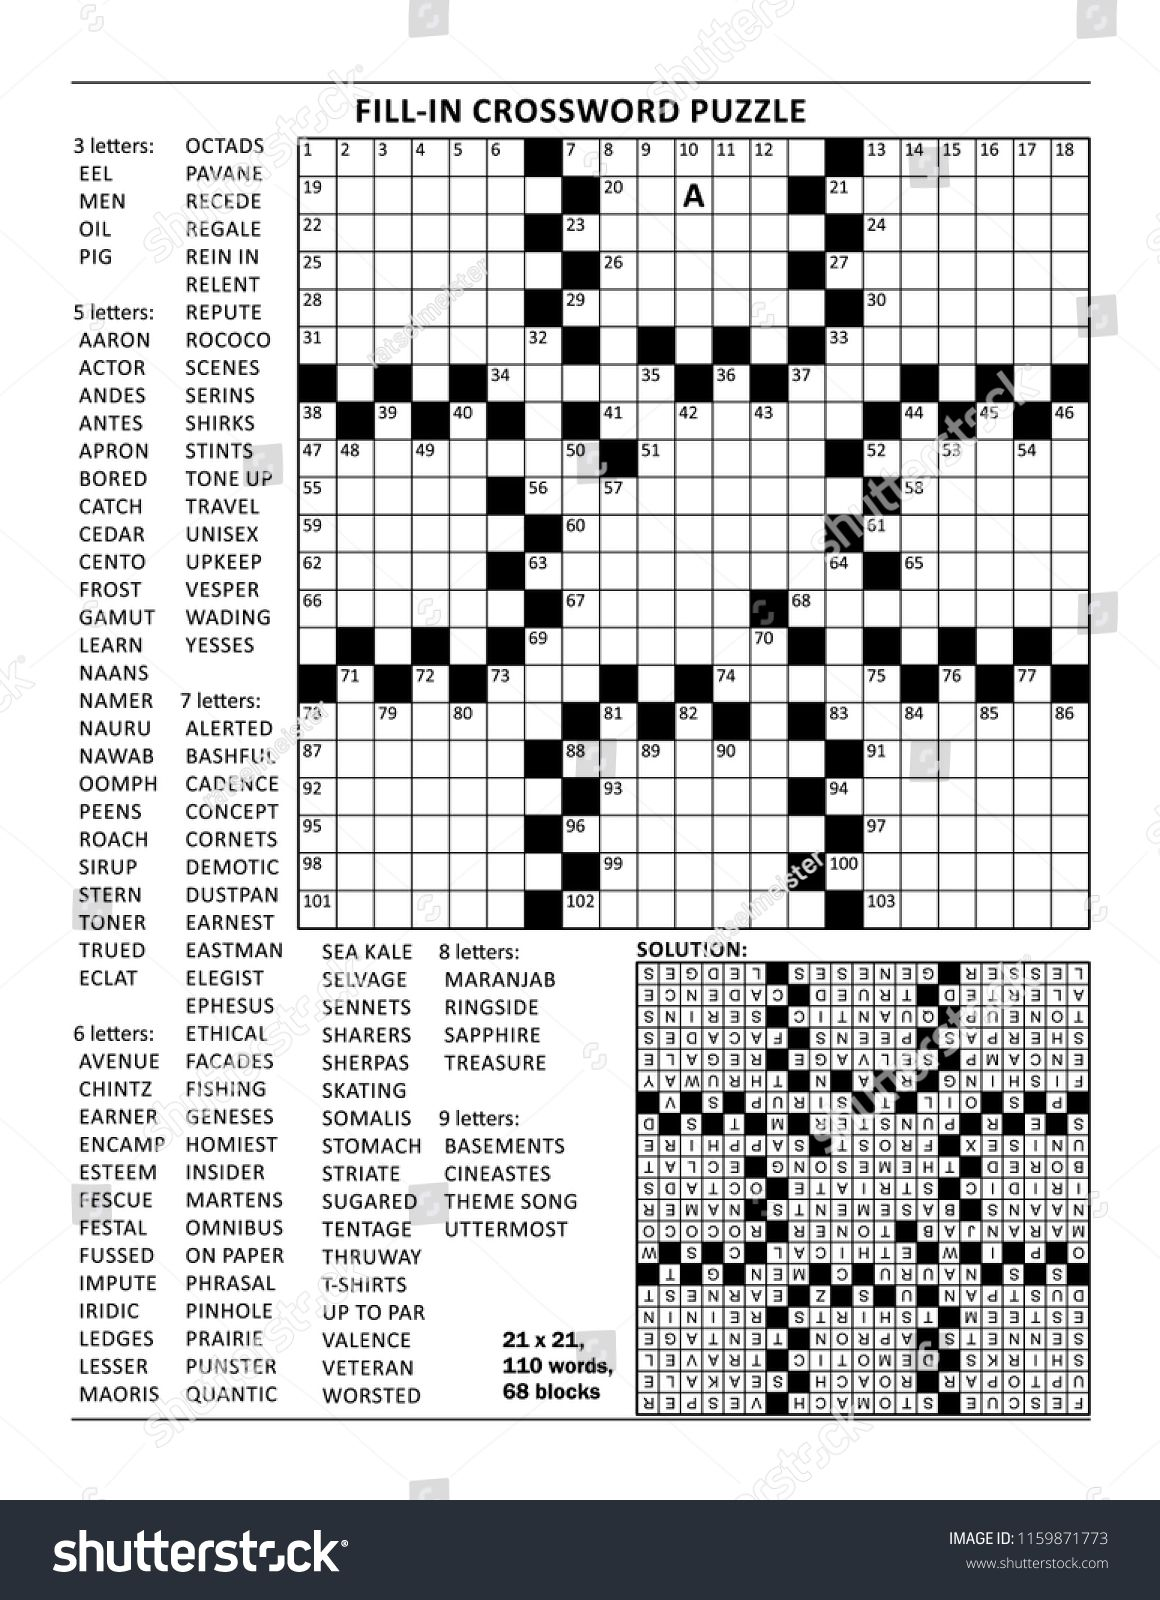 Fill In The Blanks Crossword Puzzle With American Style Grid Of 23x23 Size 68 Blocks 110 Words One Letter Reveale Fill In Puzzles Crossword Puzzle Crossword